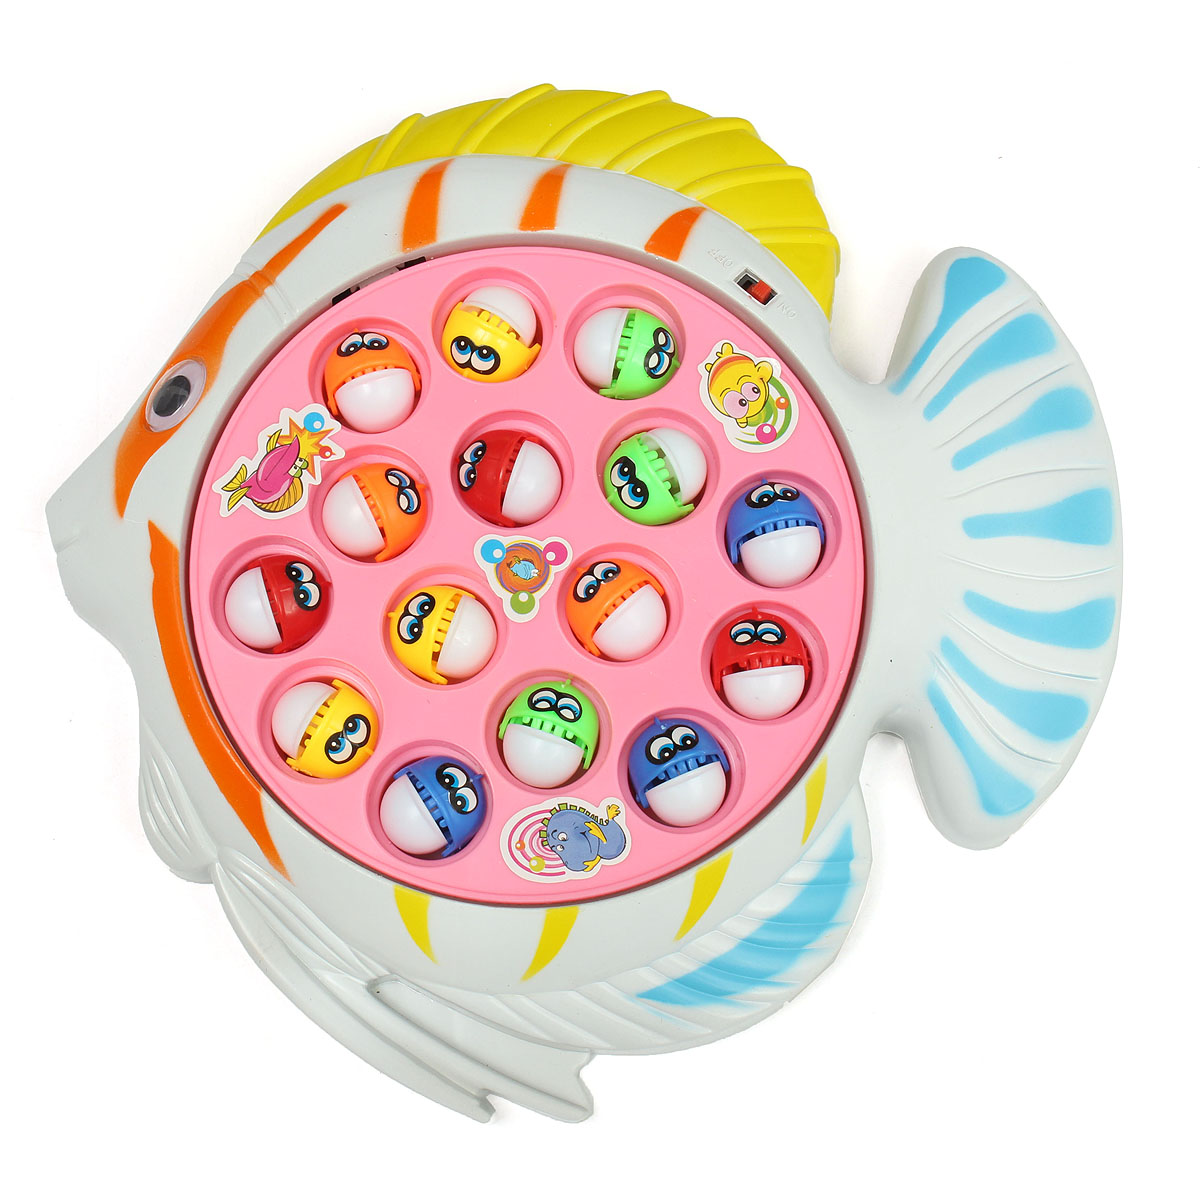 Fish Game Toy : Fishing game toy random color children toys alexnld